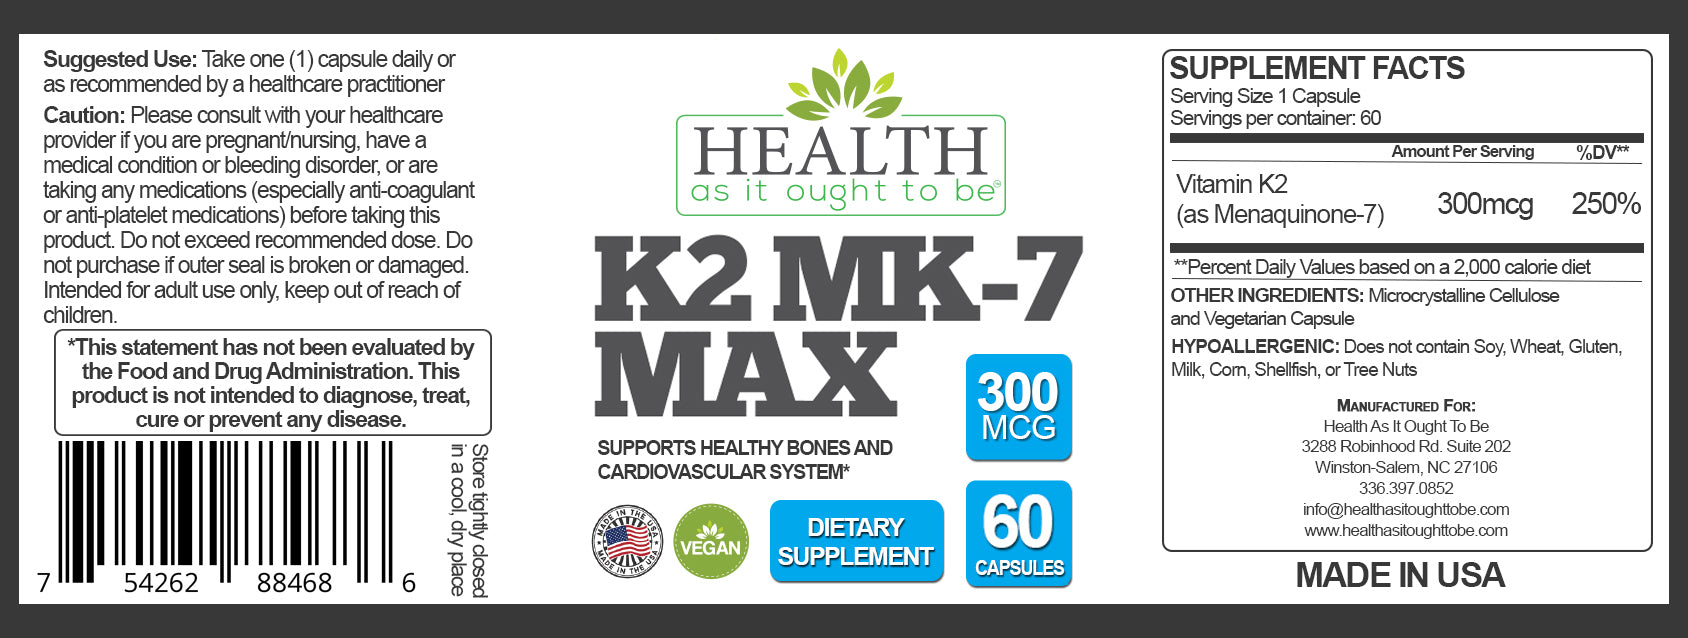 HAIOTB REFORMULATED High Dose Vitamin K2 MK7 MAX 300 mcg - 60 Vegan Capsules - Health As It Ought to Be